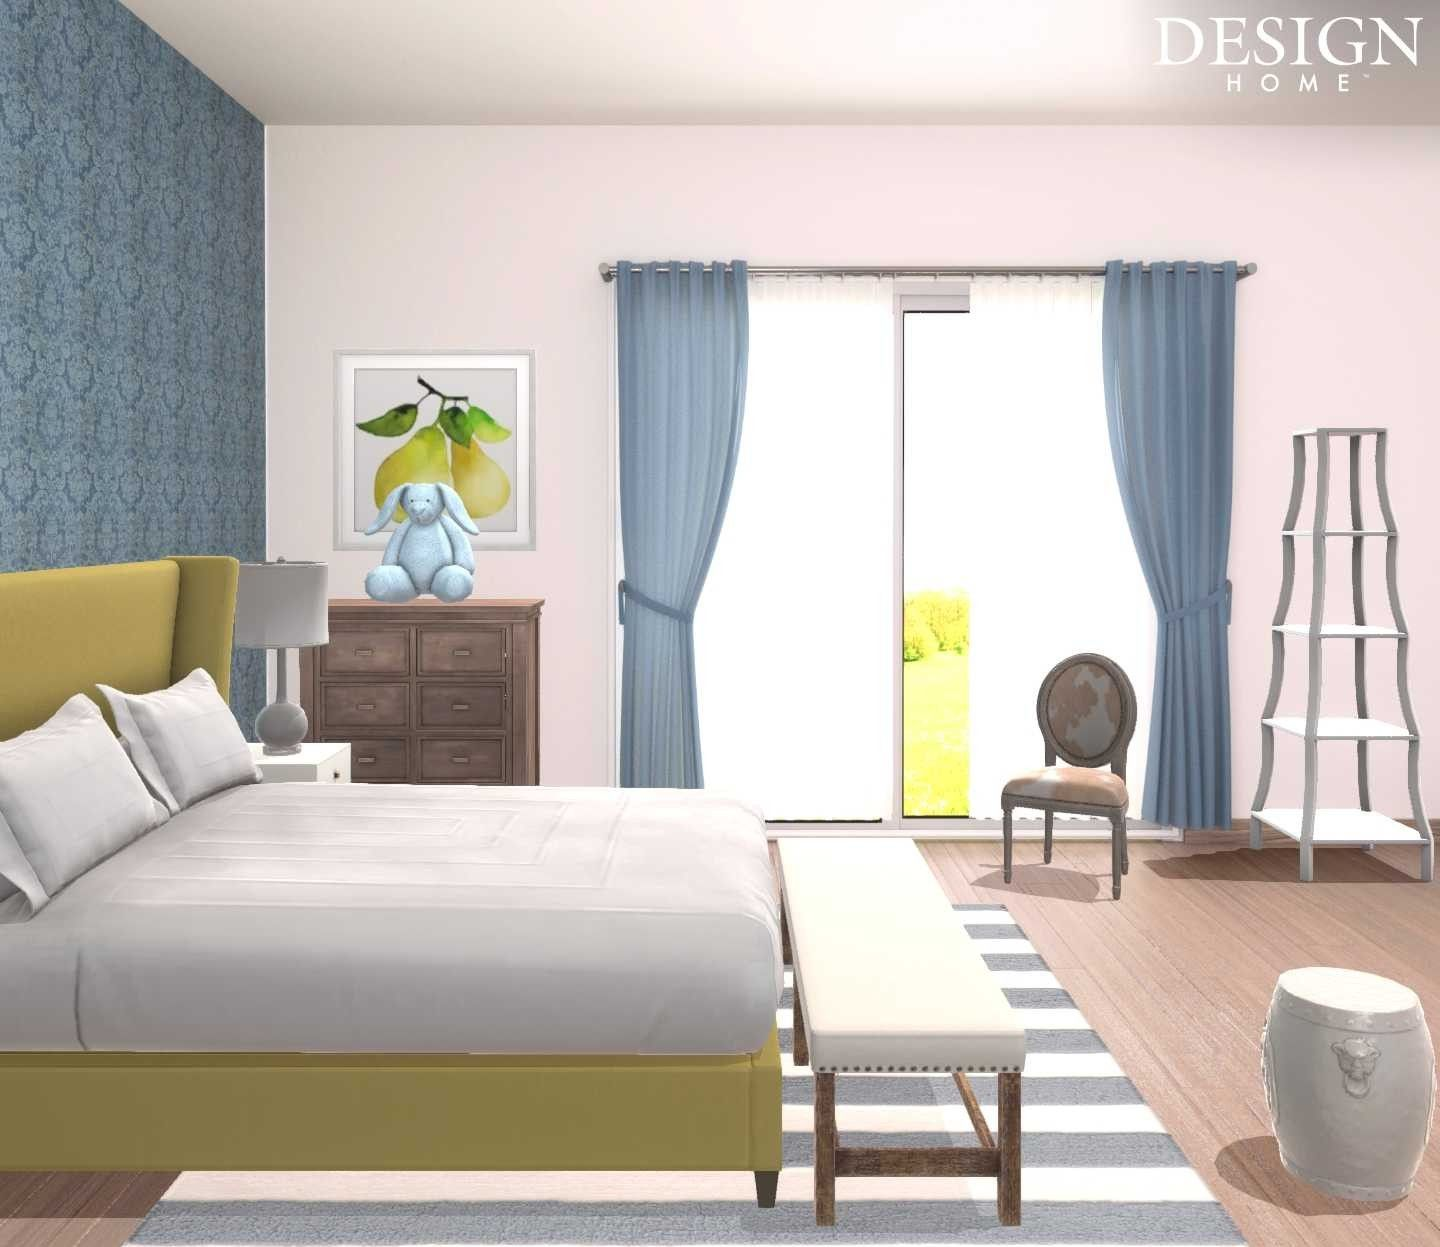 Bedroom Design Apps Pinjennifer Norris On Design Home App  Pinterest  App